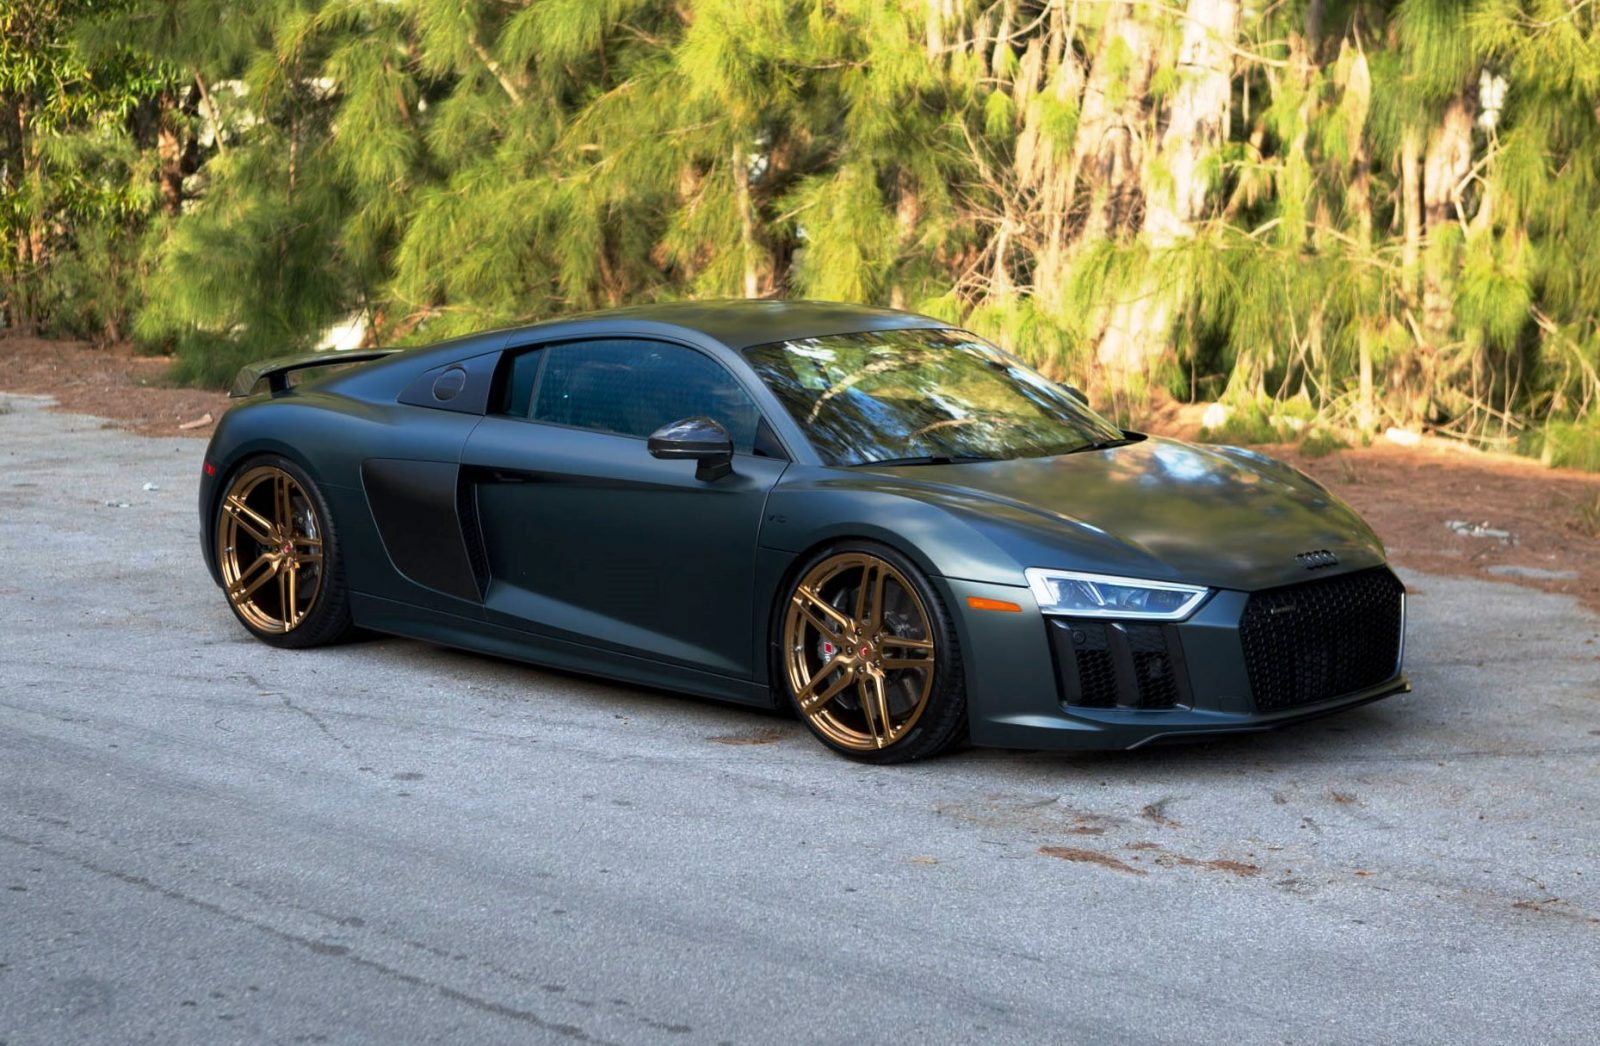 Audi R8 V10 Plus - HC-1 - For Sale -_32654838175_o